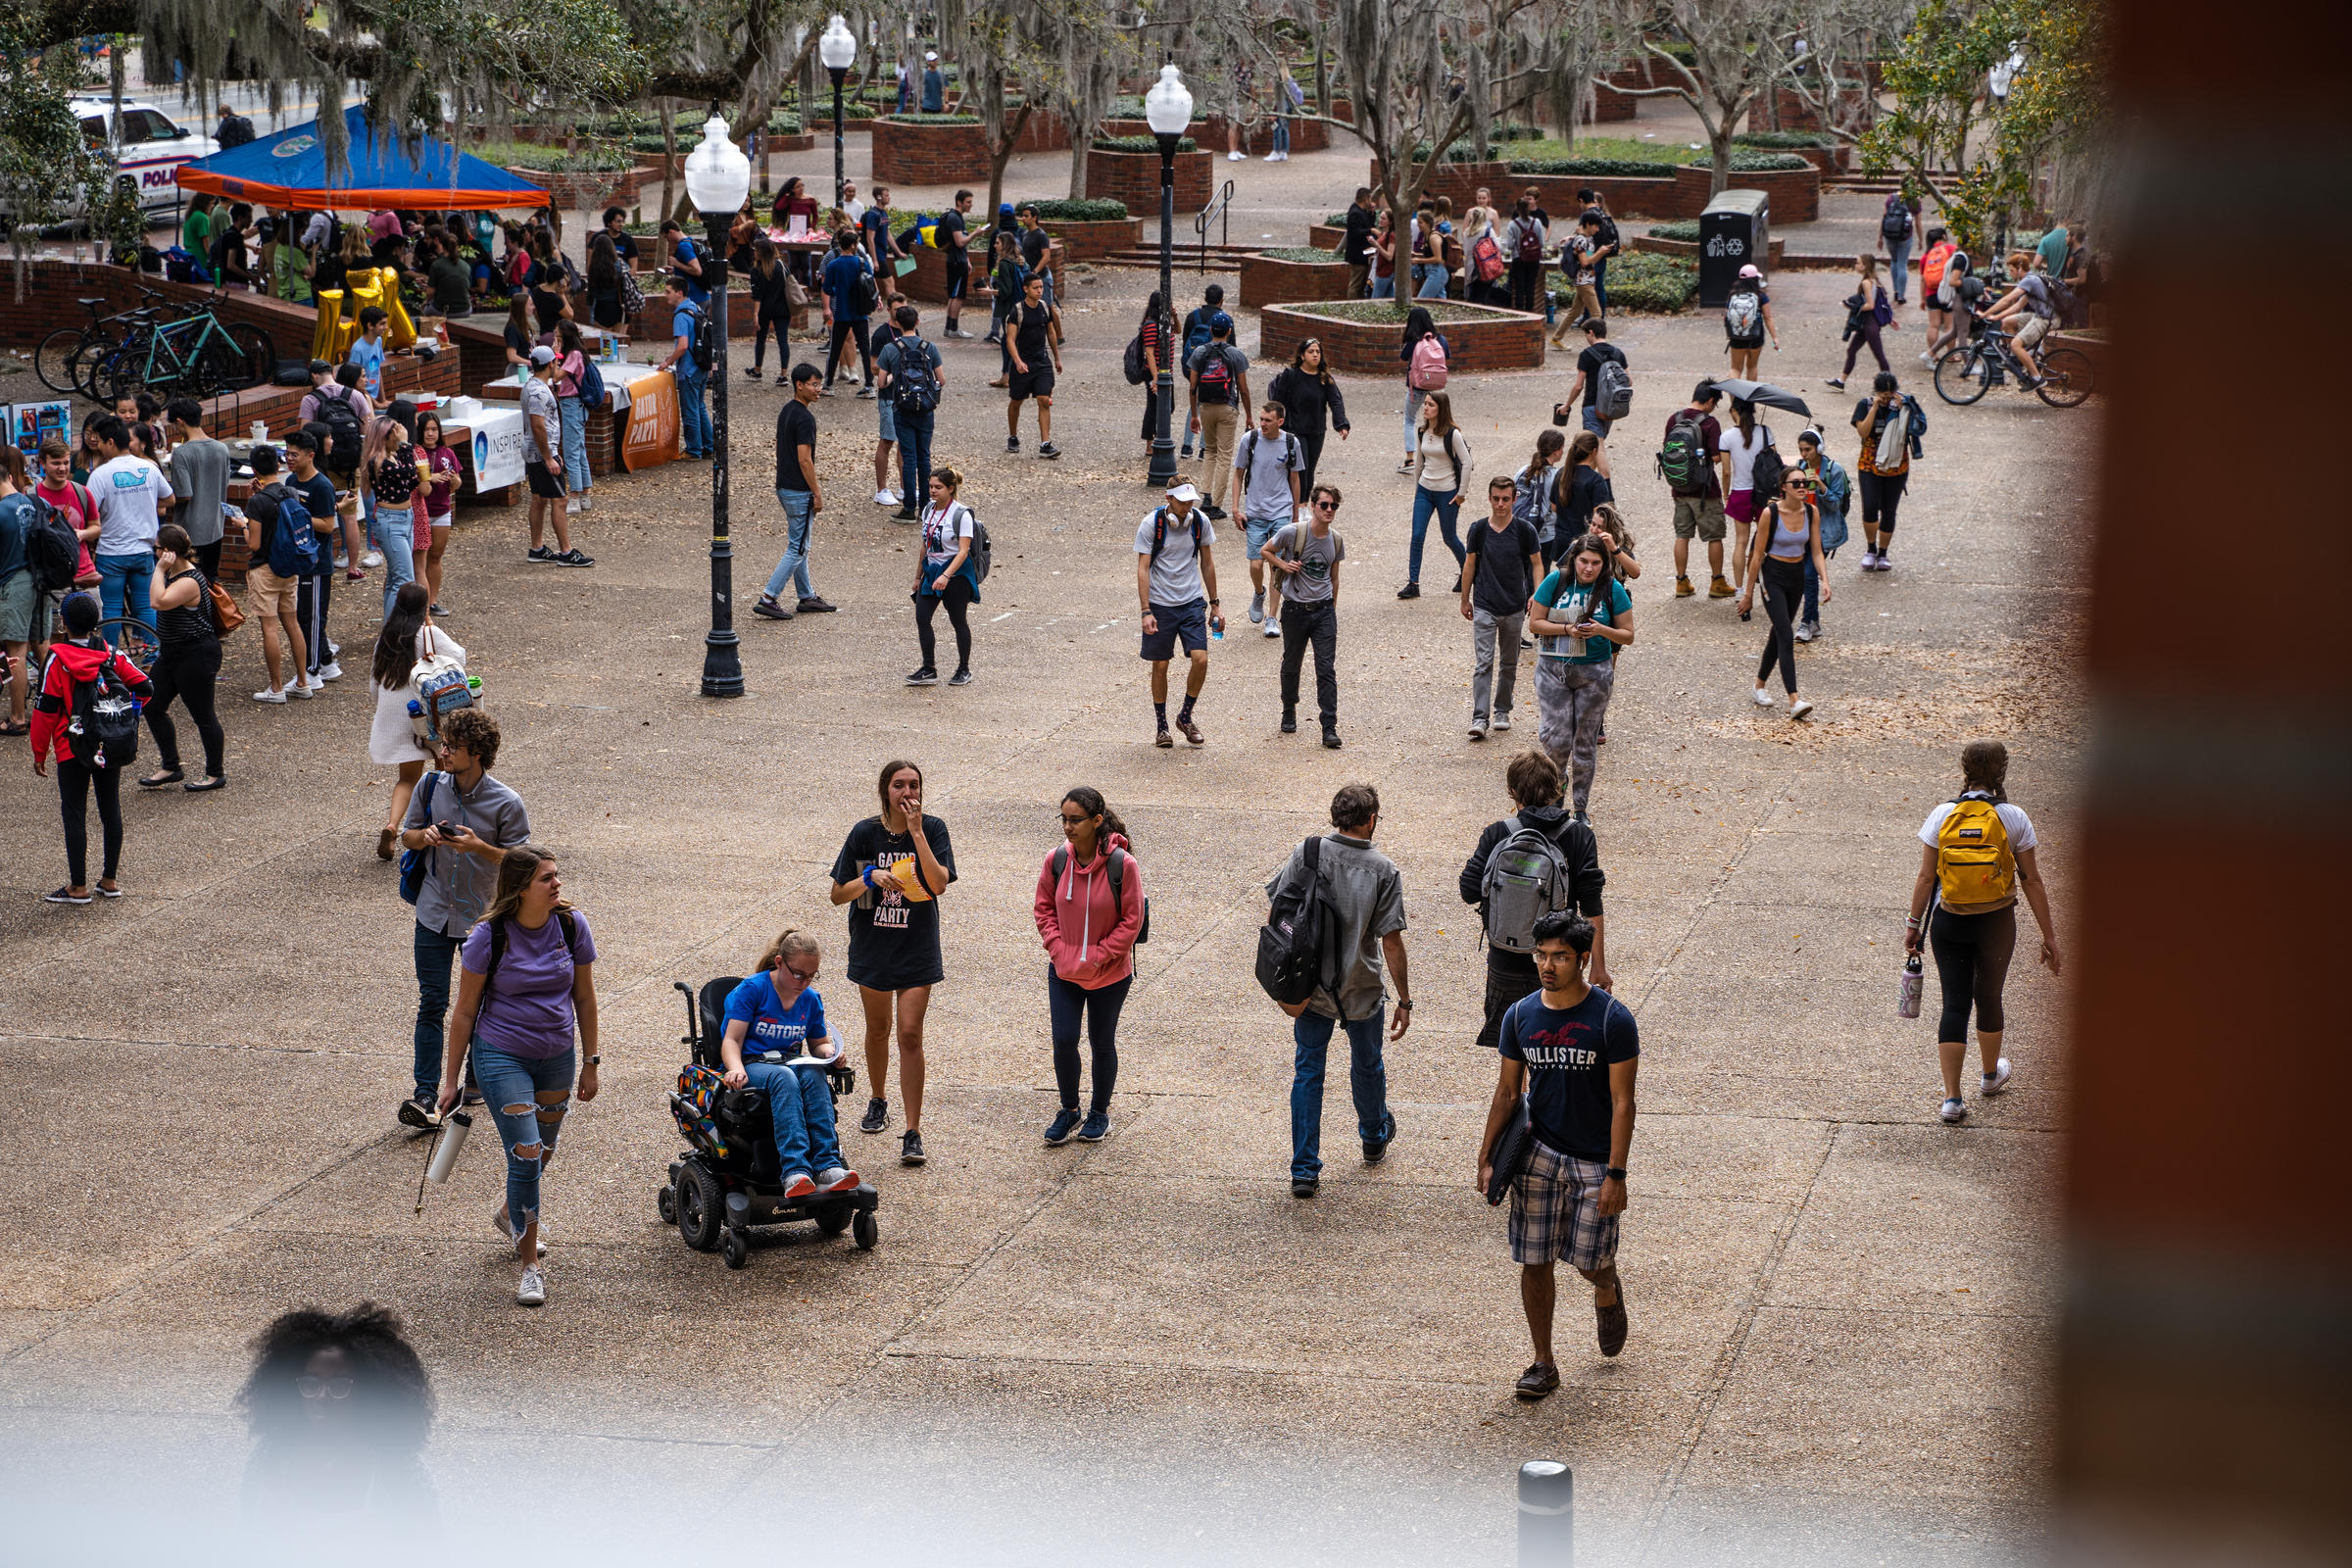 10 Things FSU Students Would Rather Do Than Try Anymore